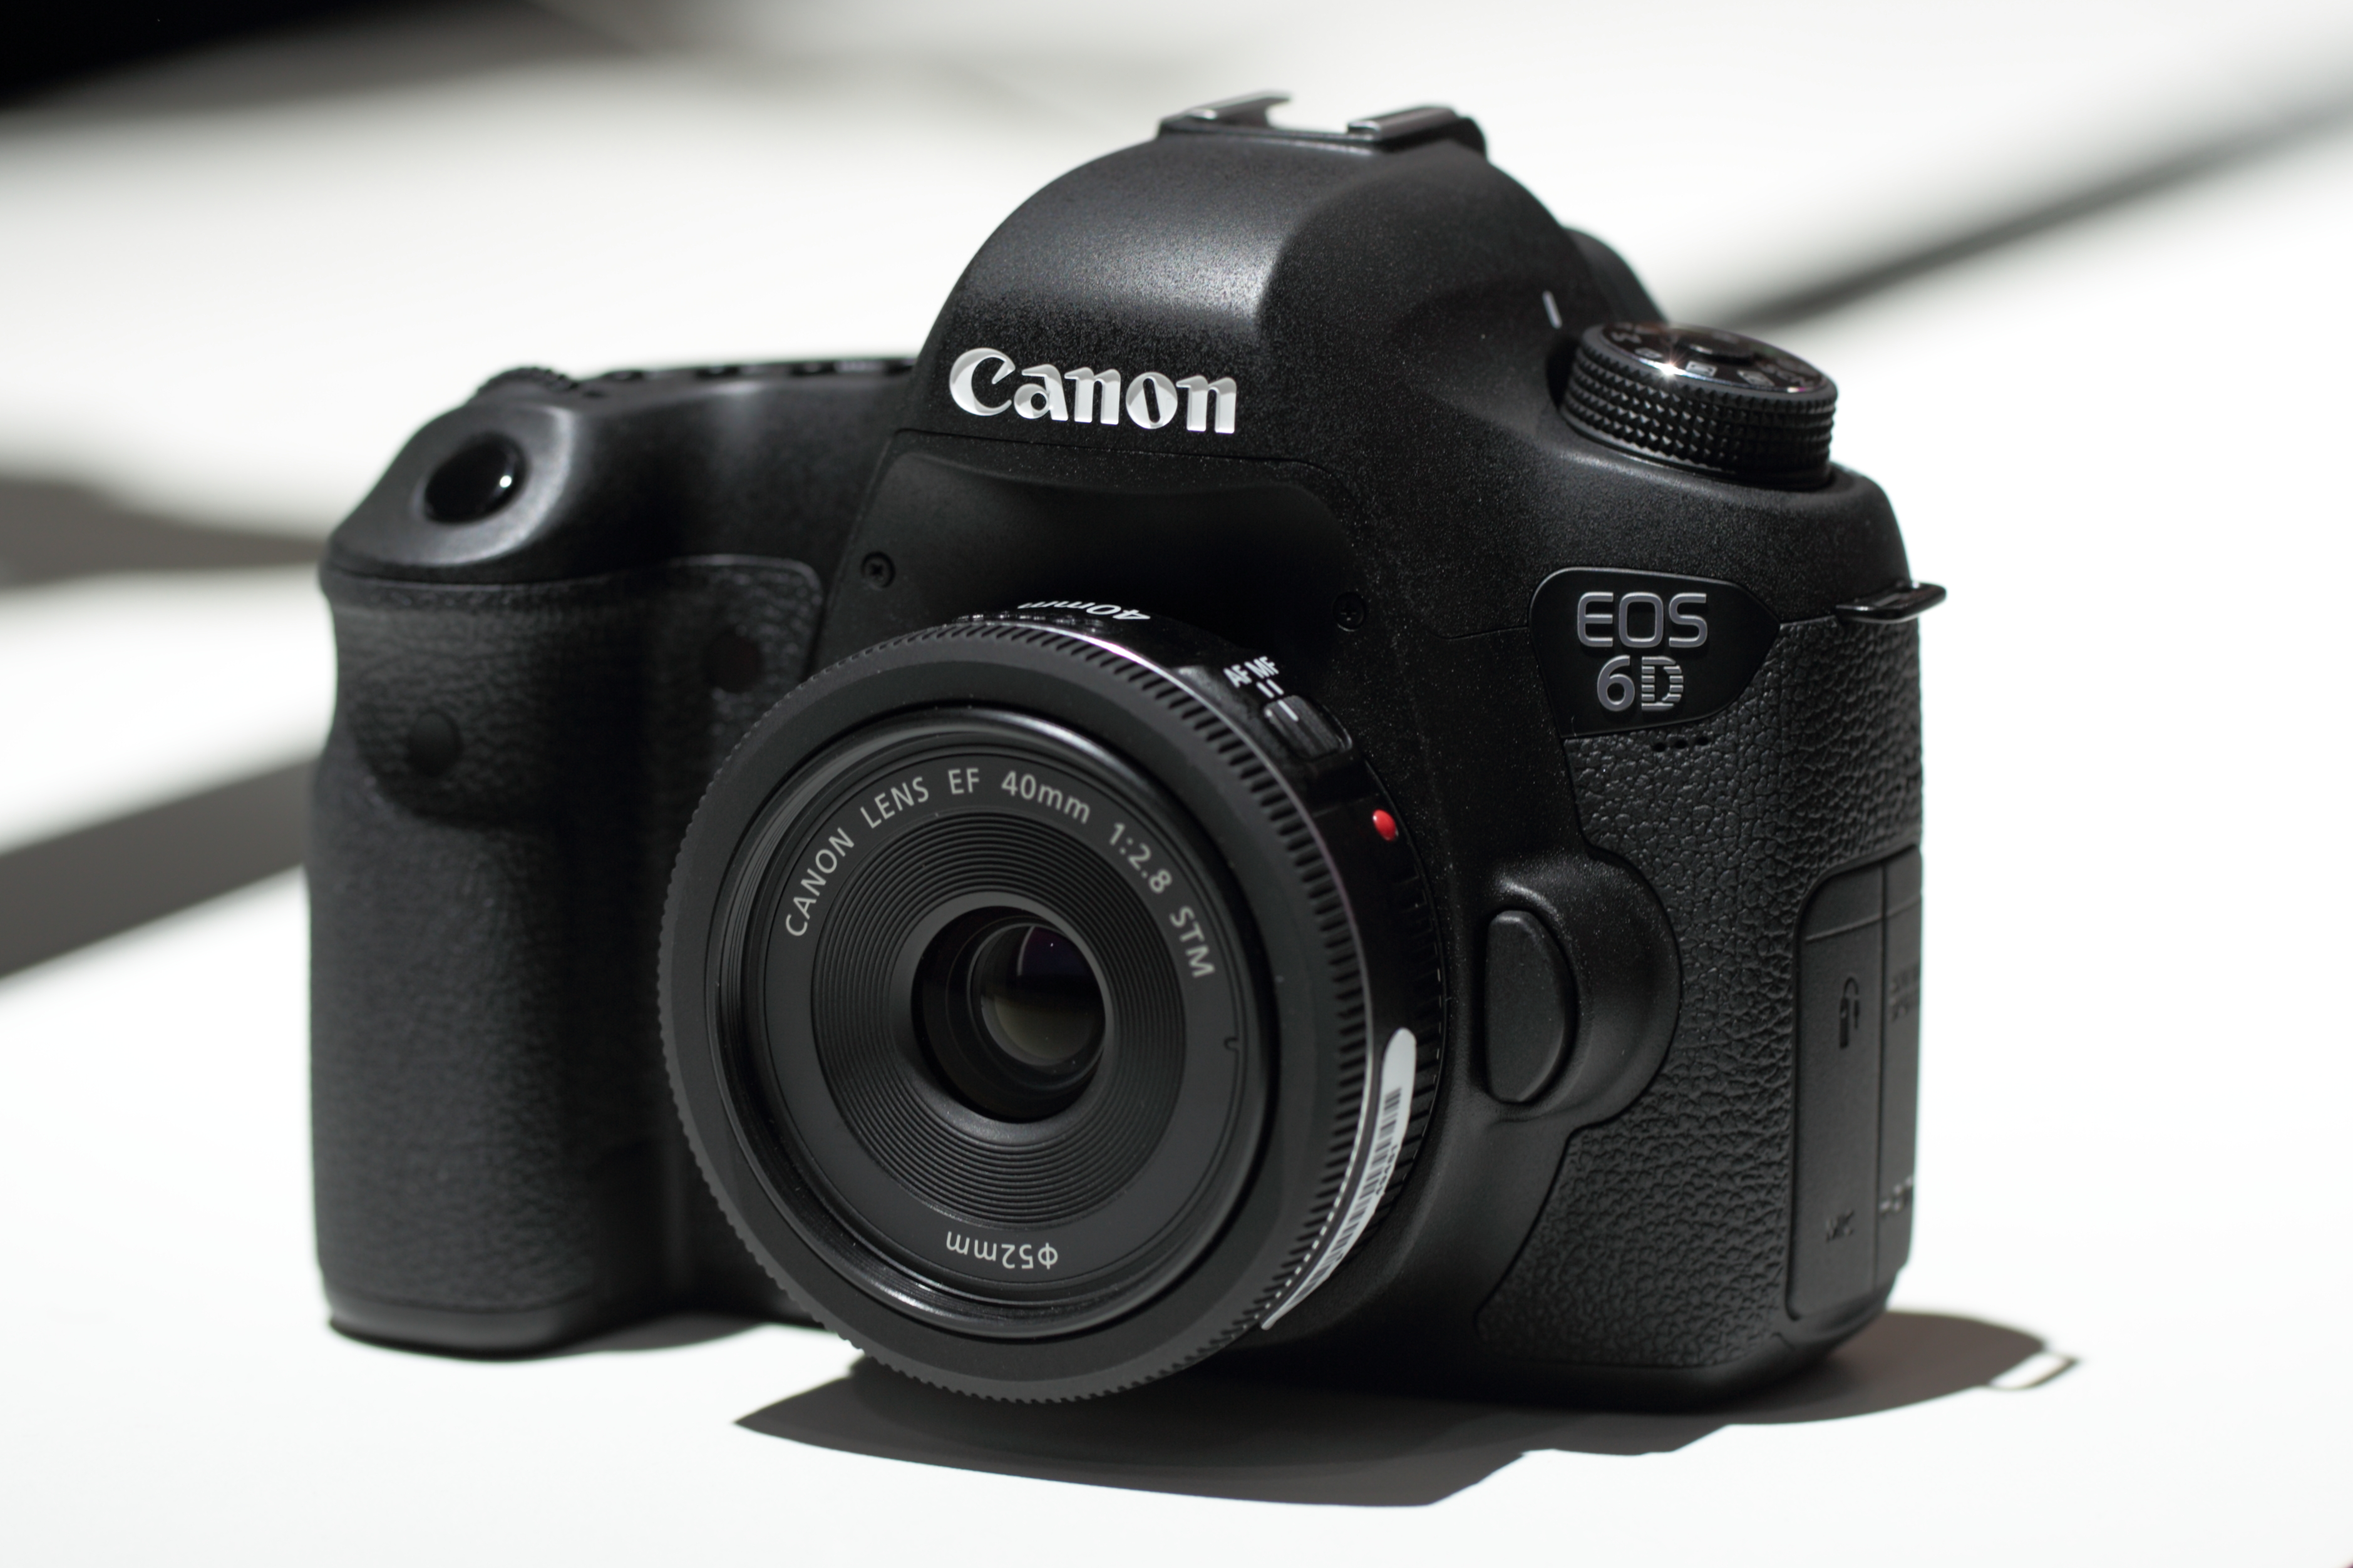 File:Canon EOS 6D.jpg - Wikipedia, the free encyclopedia